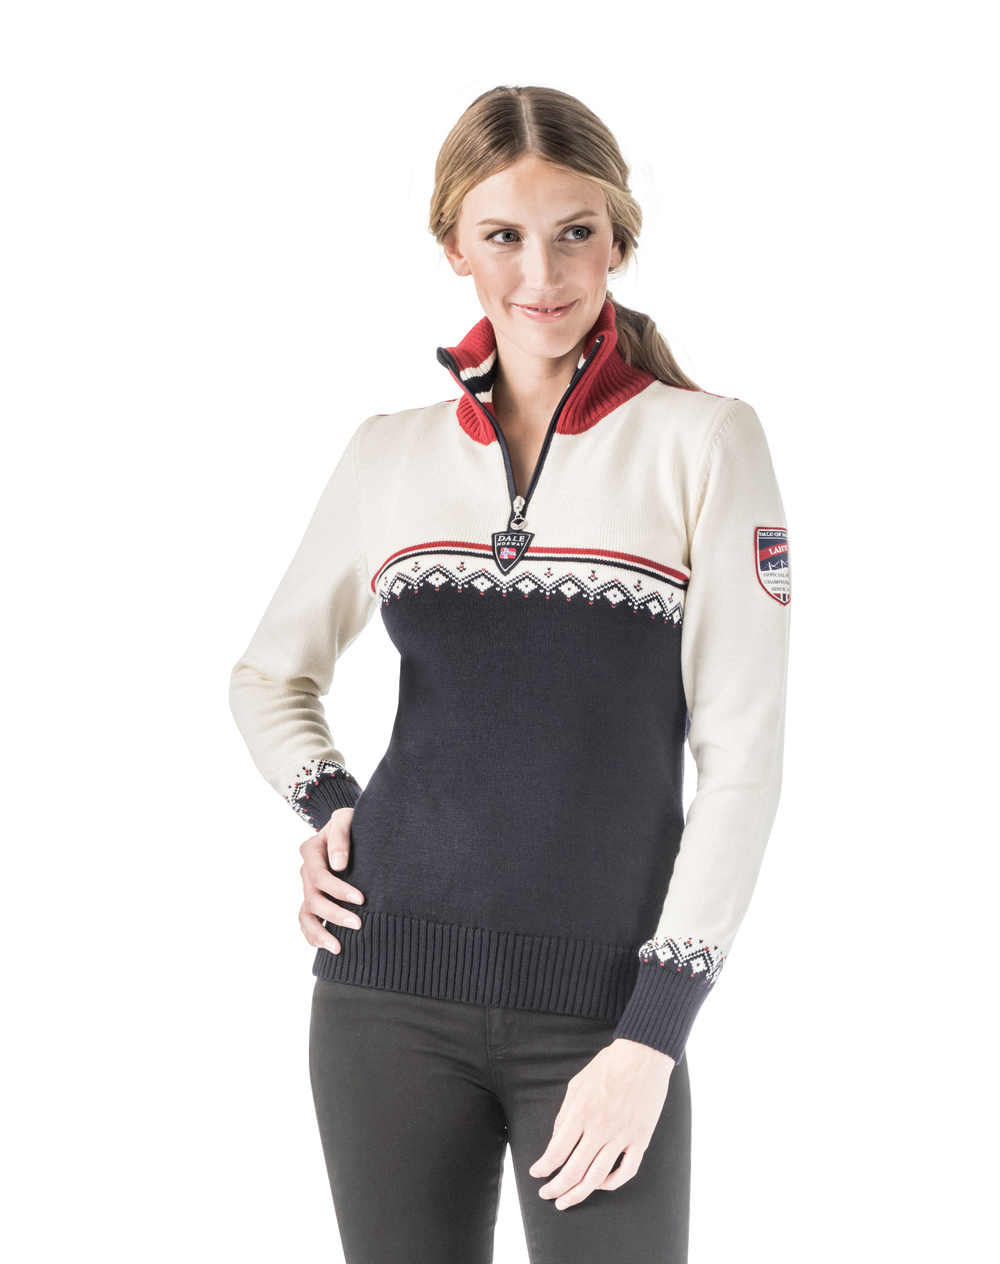 Lahti Women's Sweater